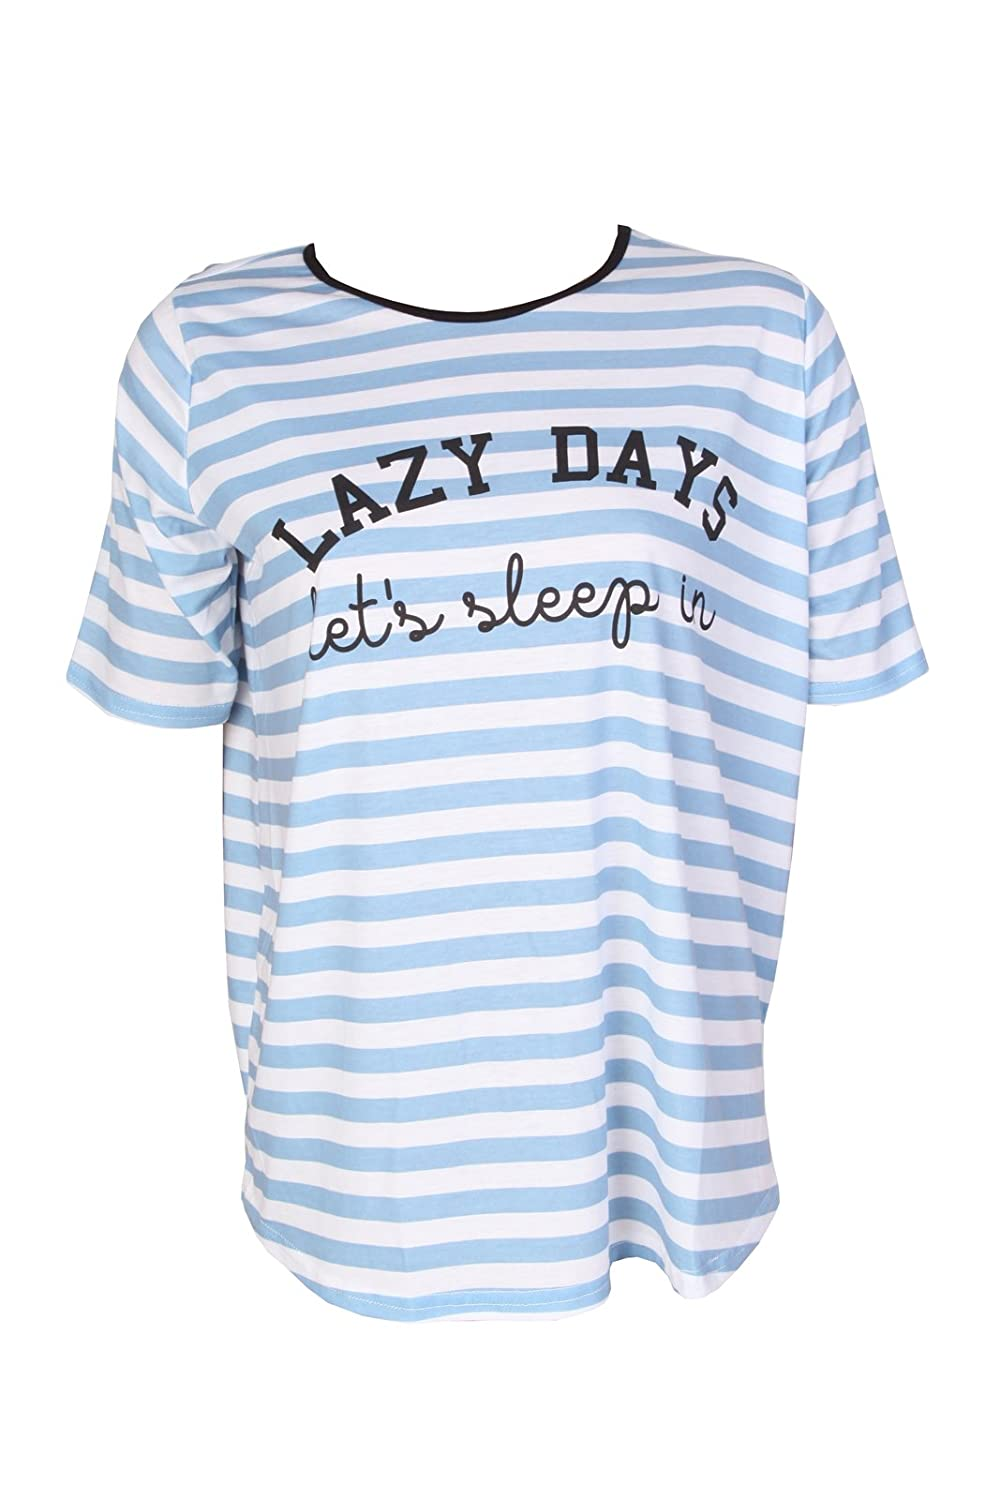 leggingonline T3 Ladies Blue Shortsleeves Comfortable Essential Maternity 'Lazy Days Let's Sleep' Slogan Top